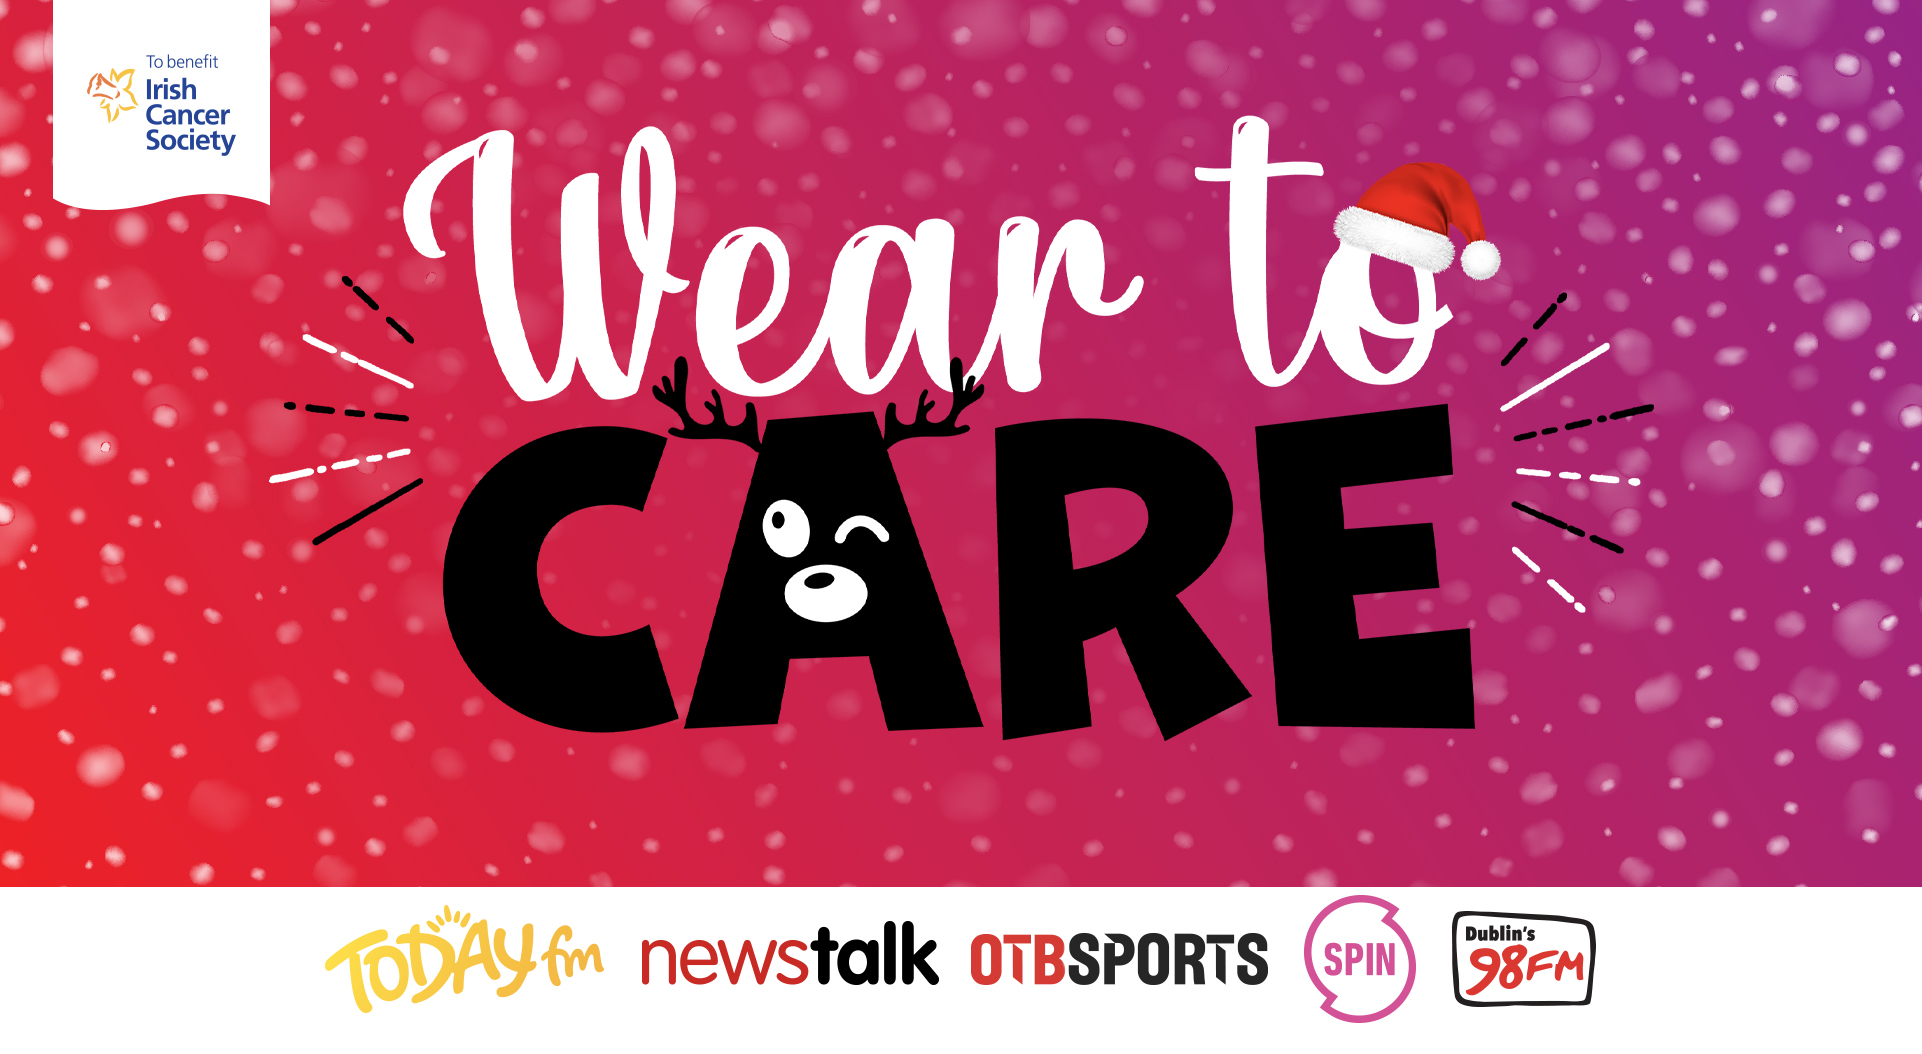 Spin South West & national radio stations come together for 'Wear to Care'